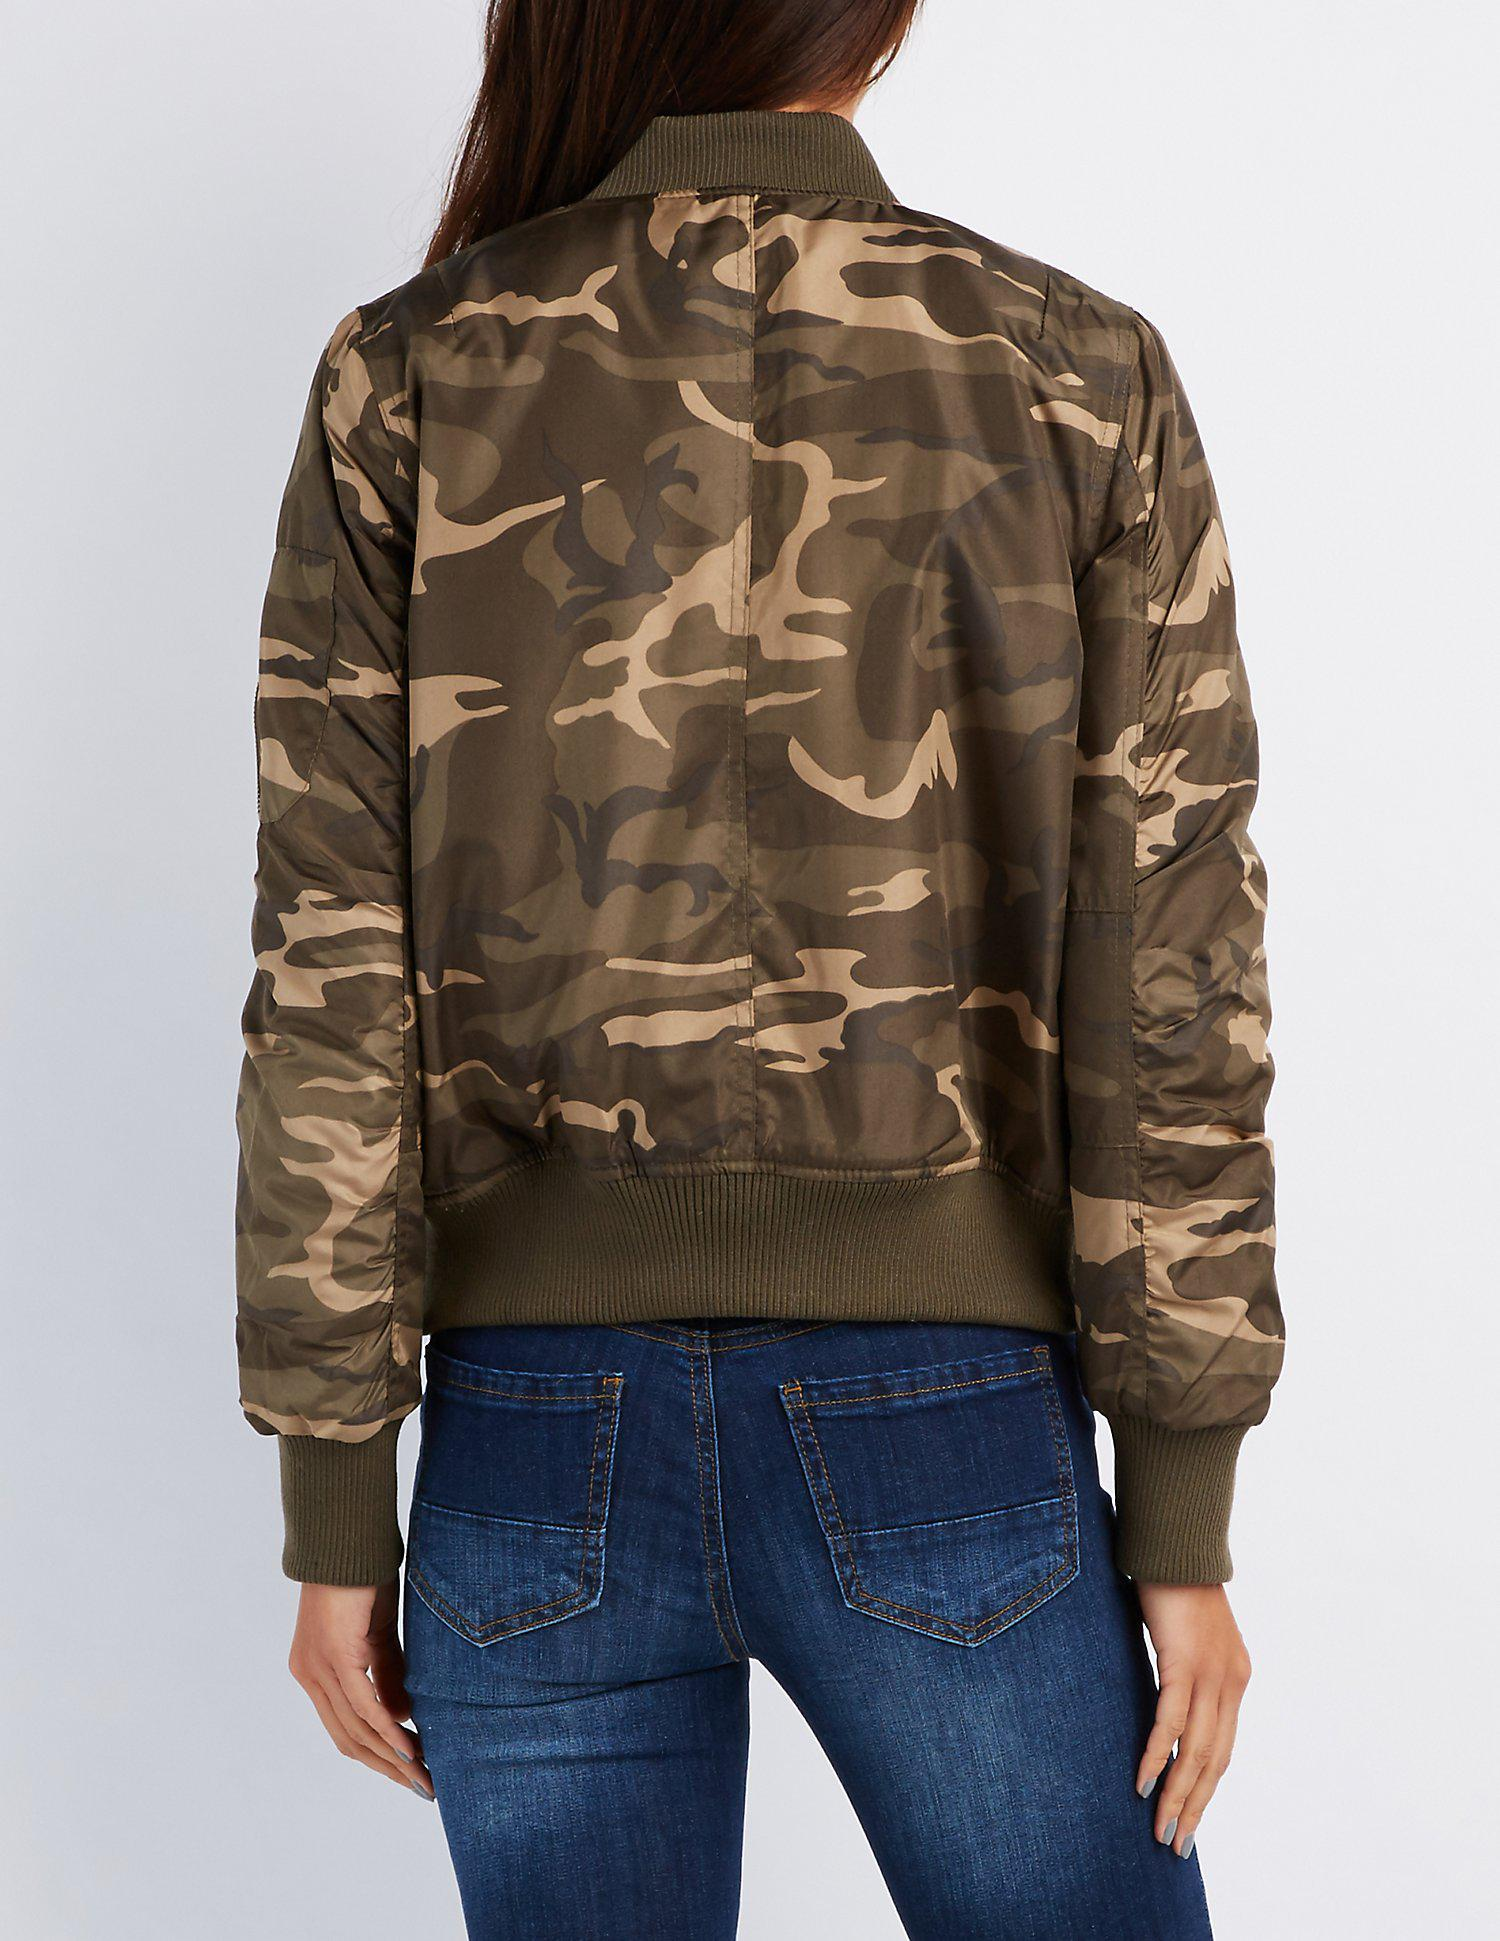 00248f1442a Lyst - Charlotte Russe Camo Padded Bomber Jacket